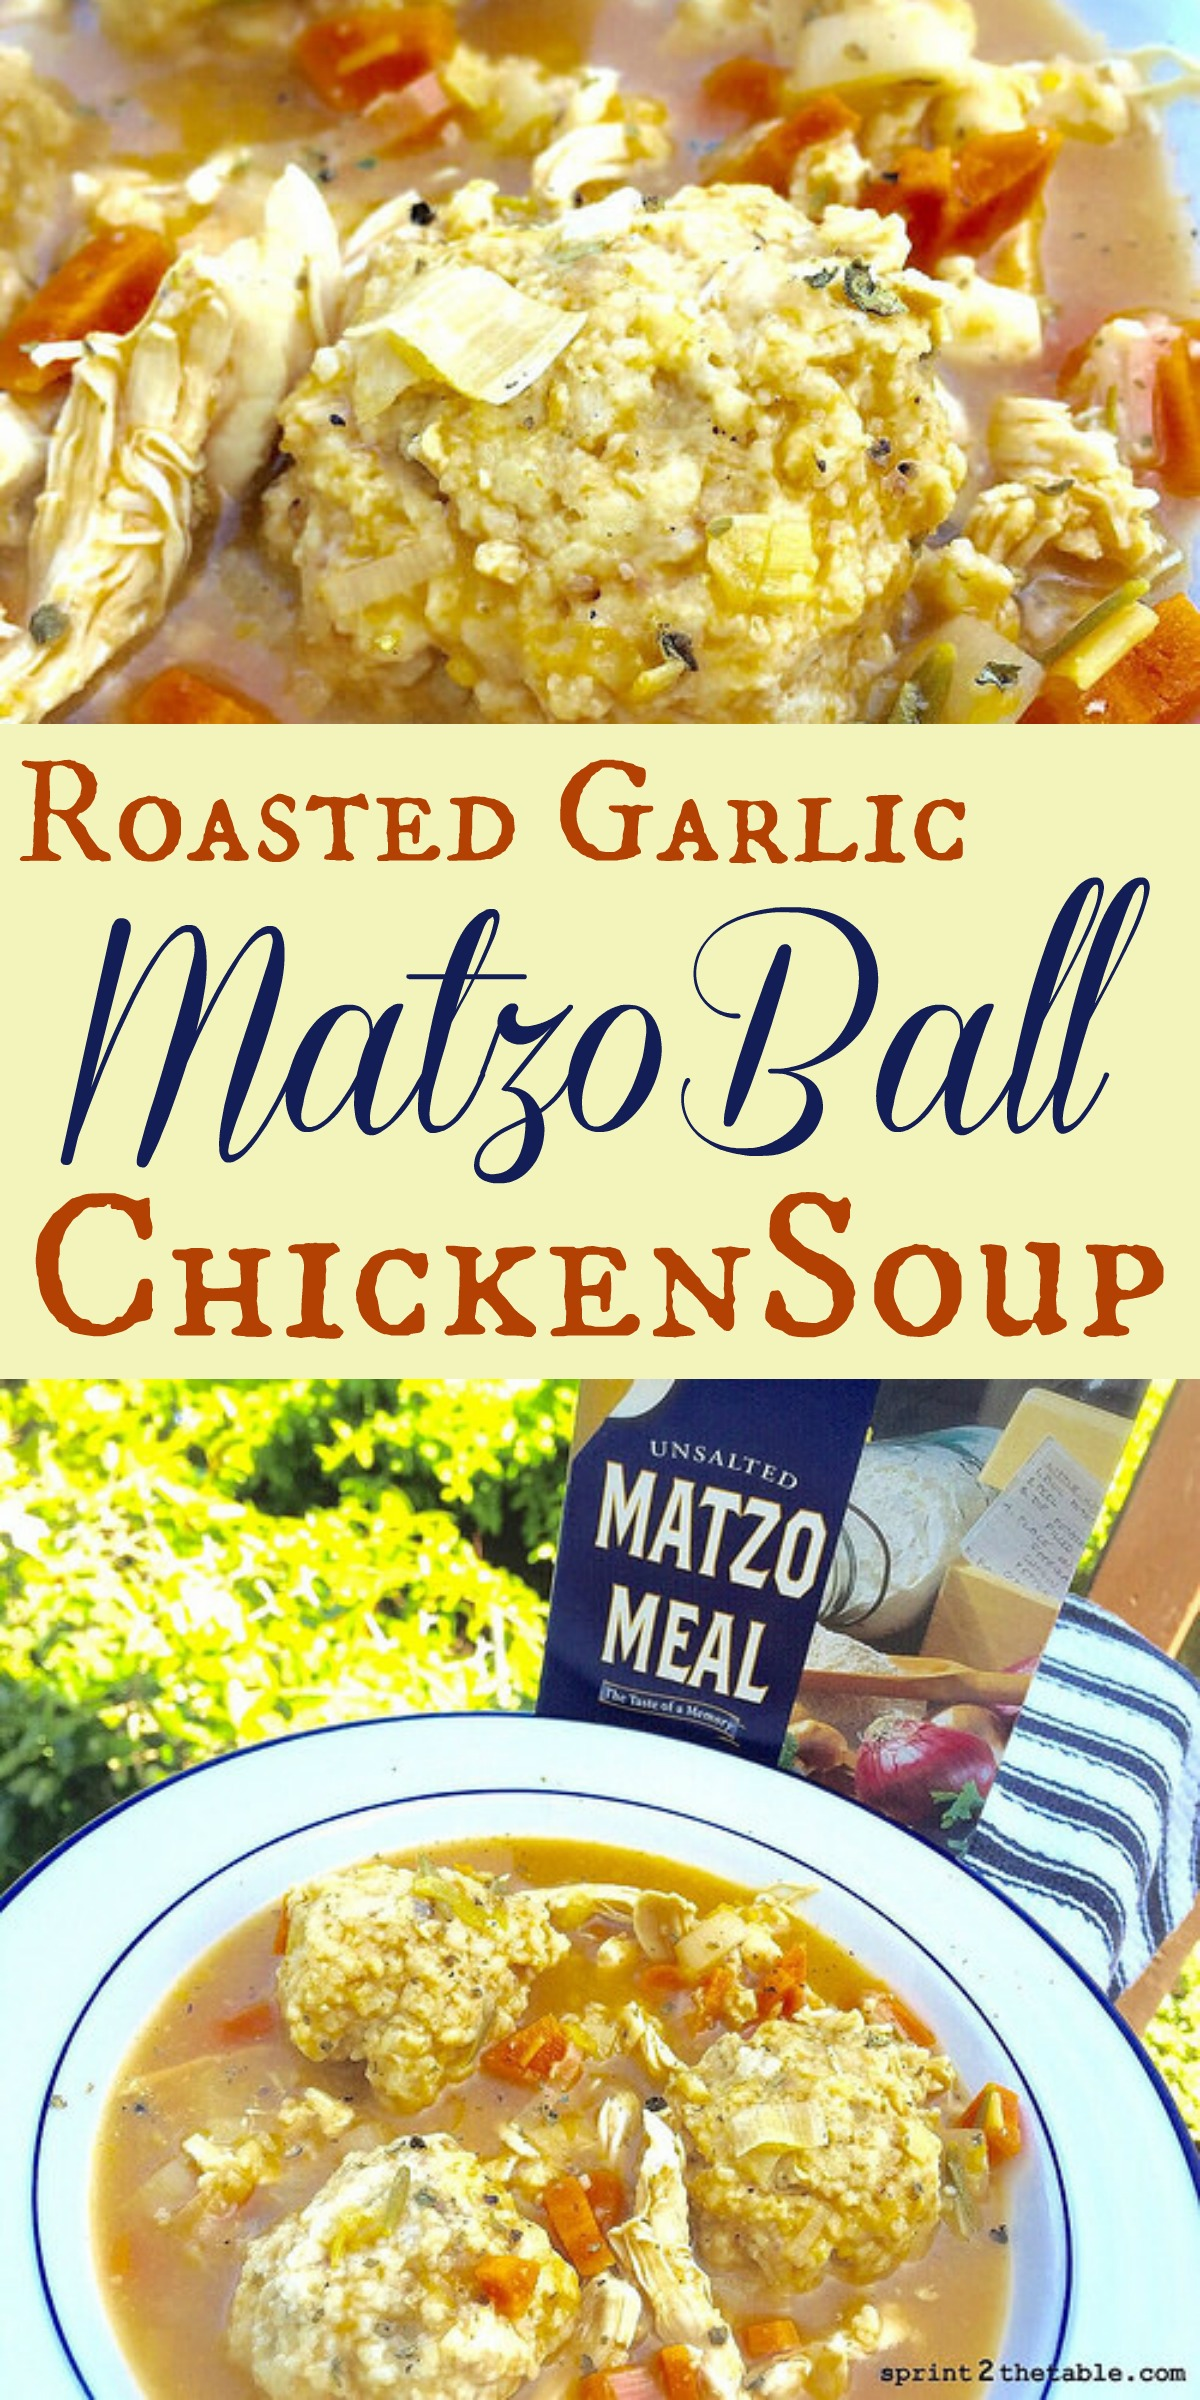 Matzo Soup is often referred to as Jewish Penicillin. This Roasted Garlic Matzo Ball Chicken Soup is based on the one my mom used to make for me.  It's the perfect cure whether you have a cold or are simply craving comfort food!